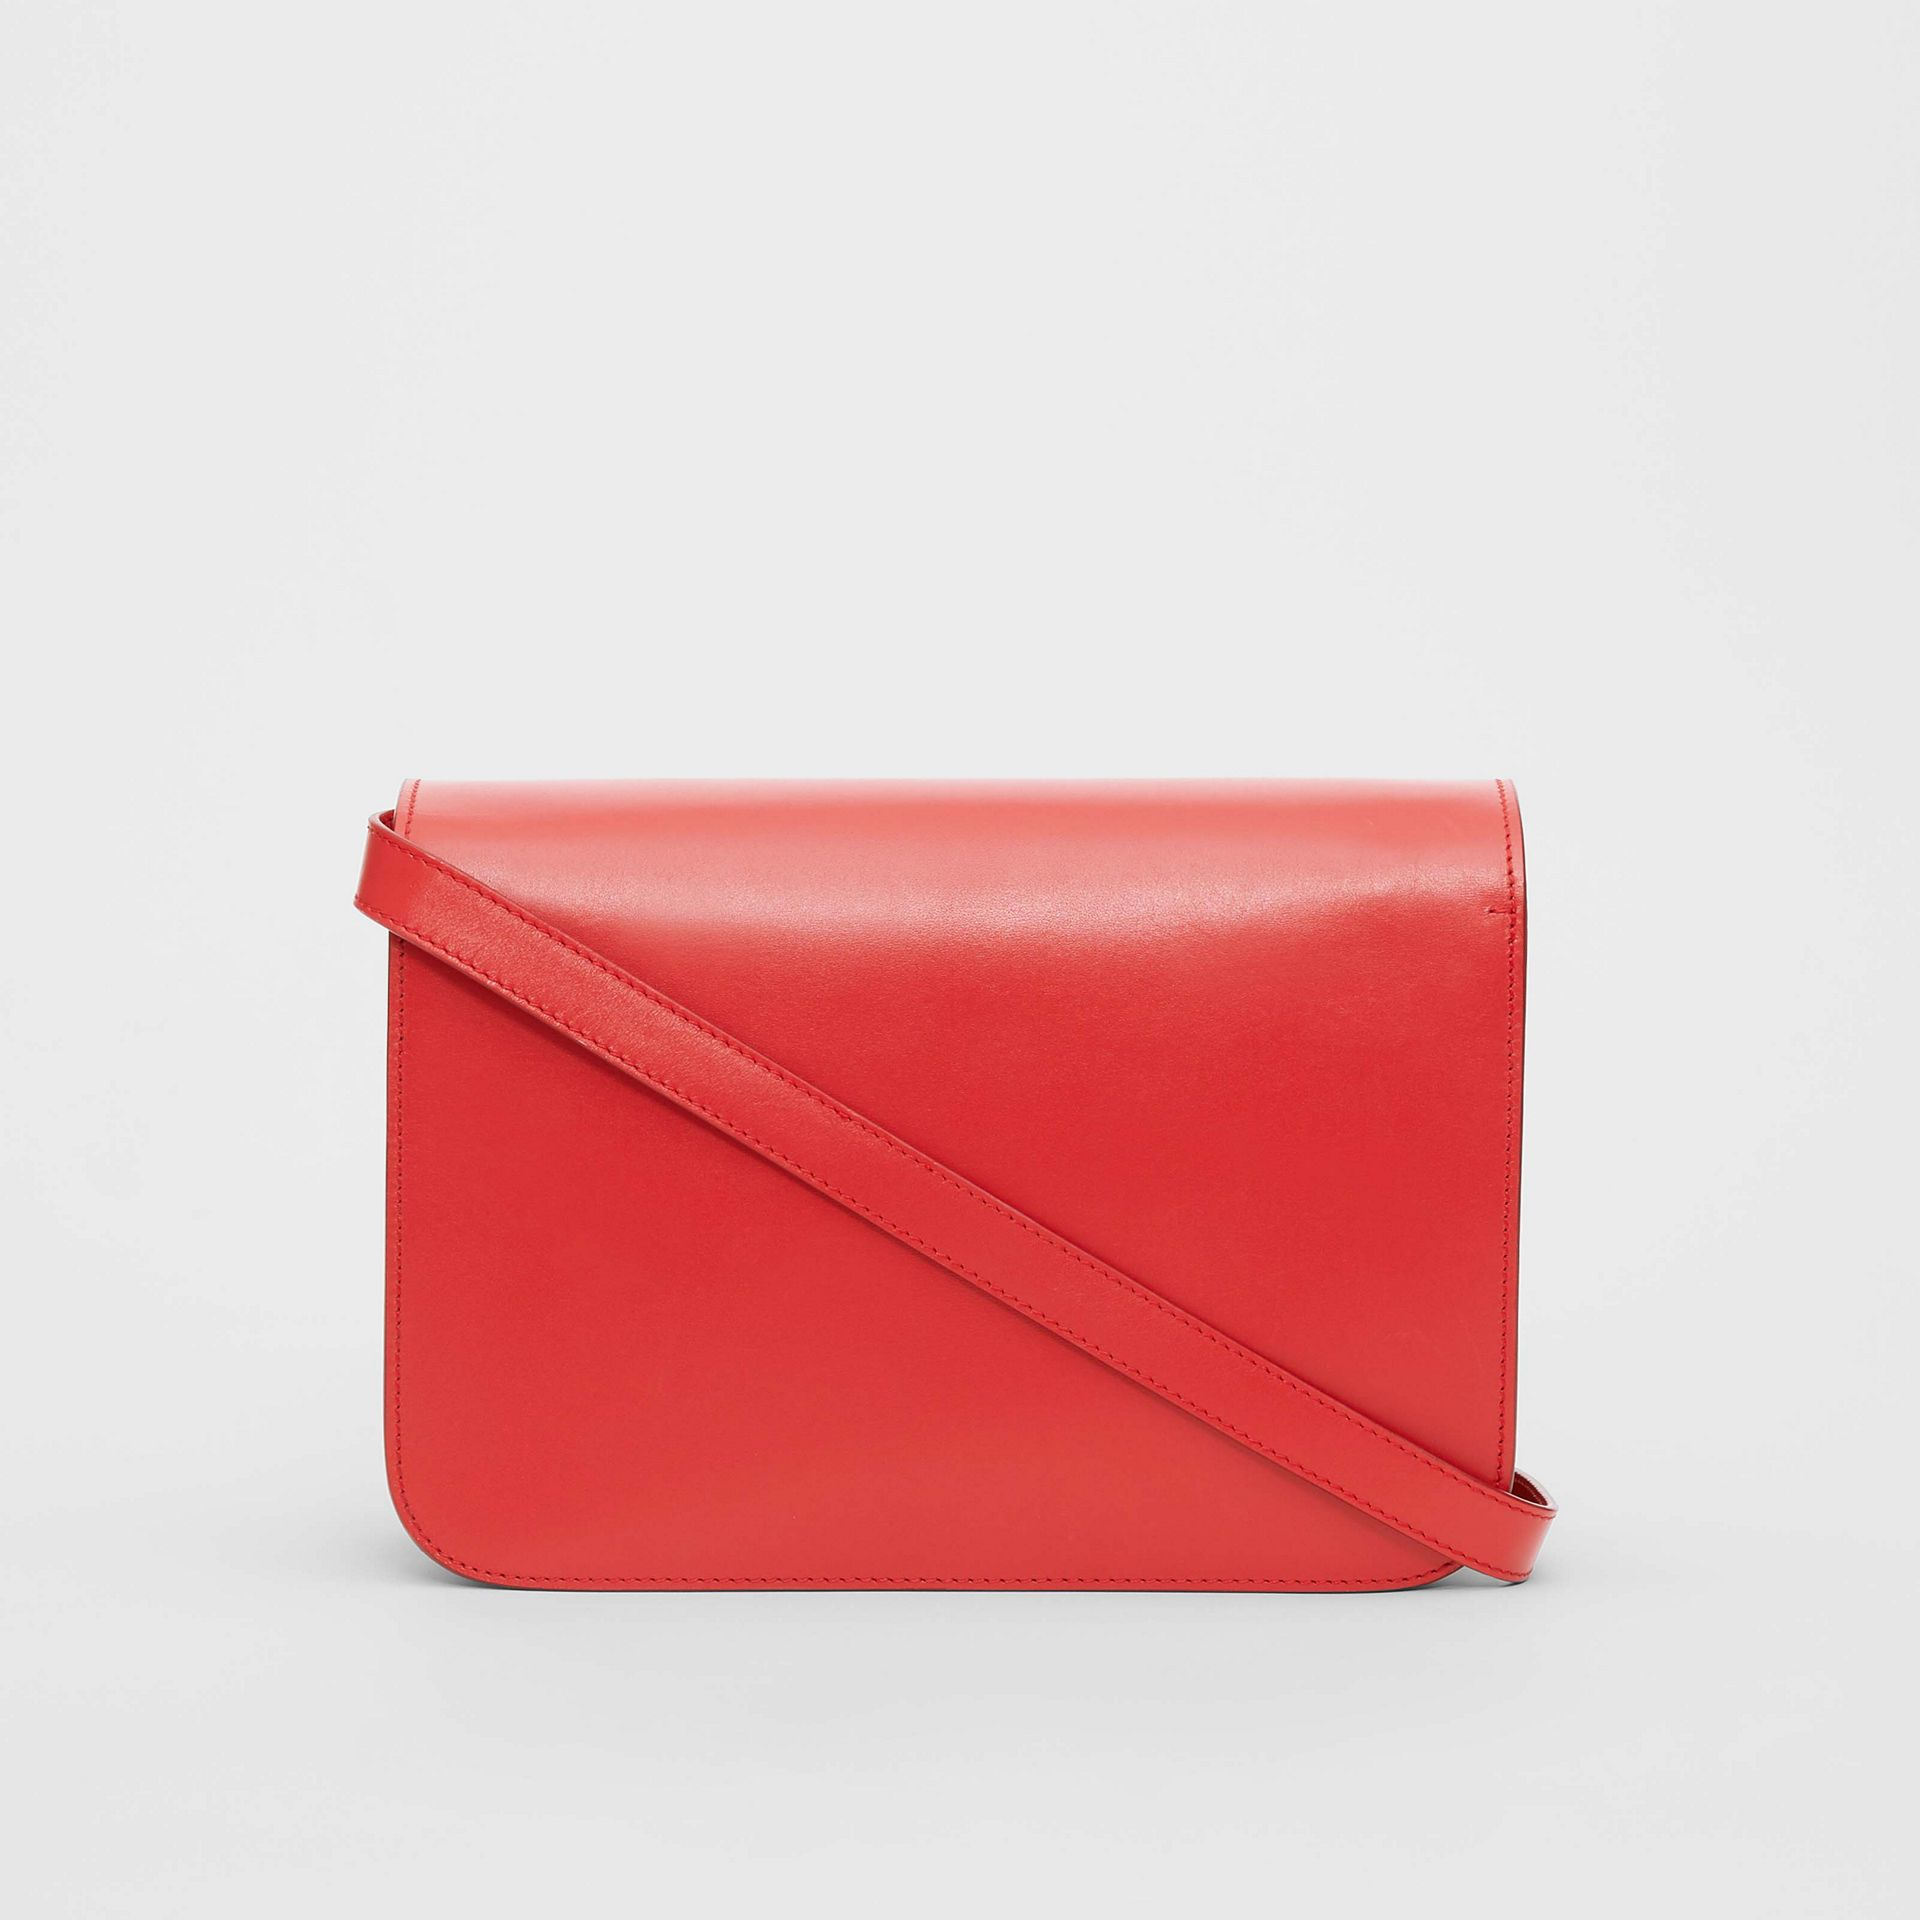 Medium Leather TB Bag in Bright Red - Women | Burberry United States - gallery image 7